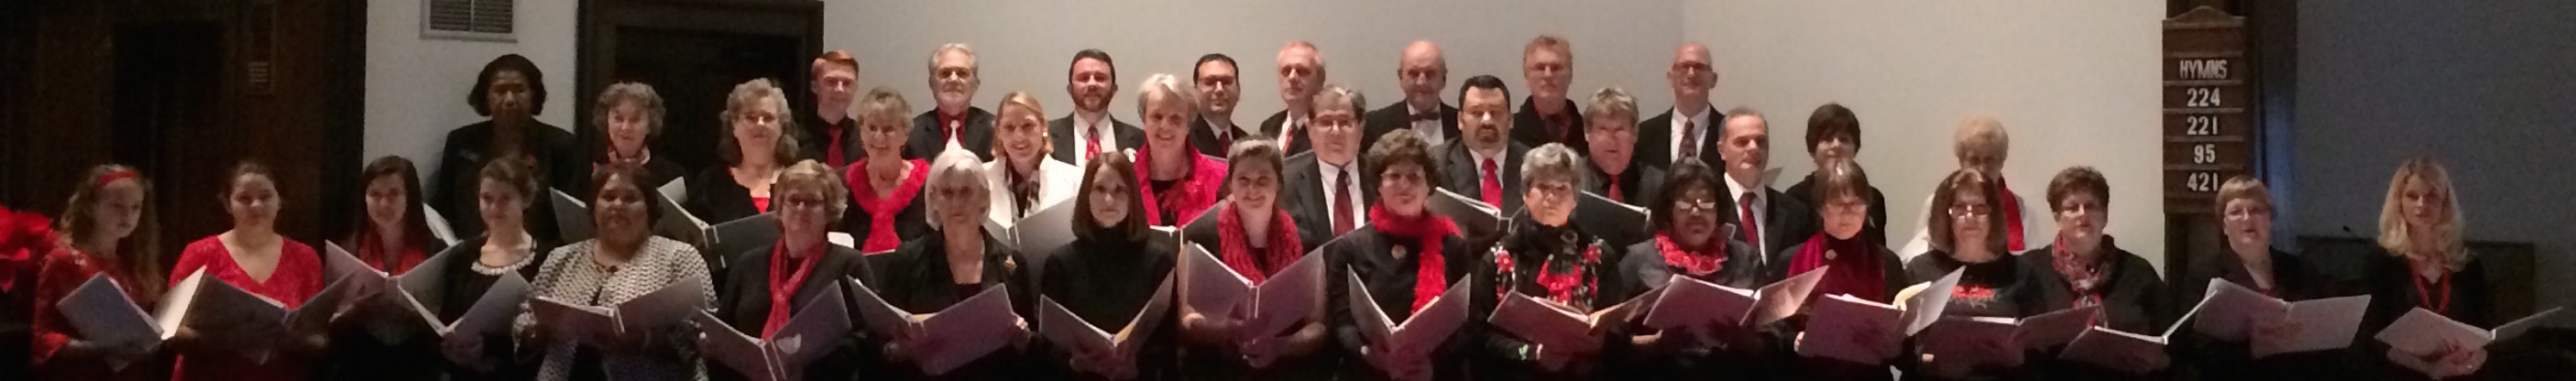 Seven Lakes Chapel Community Choir